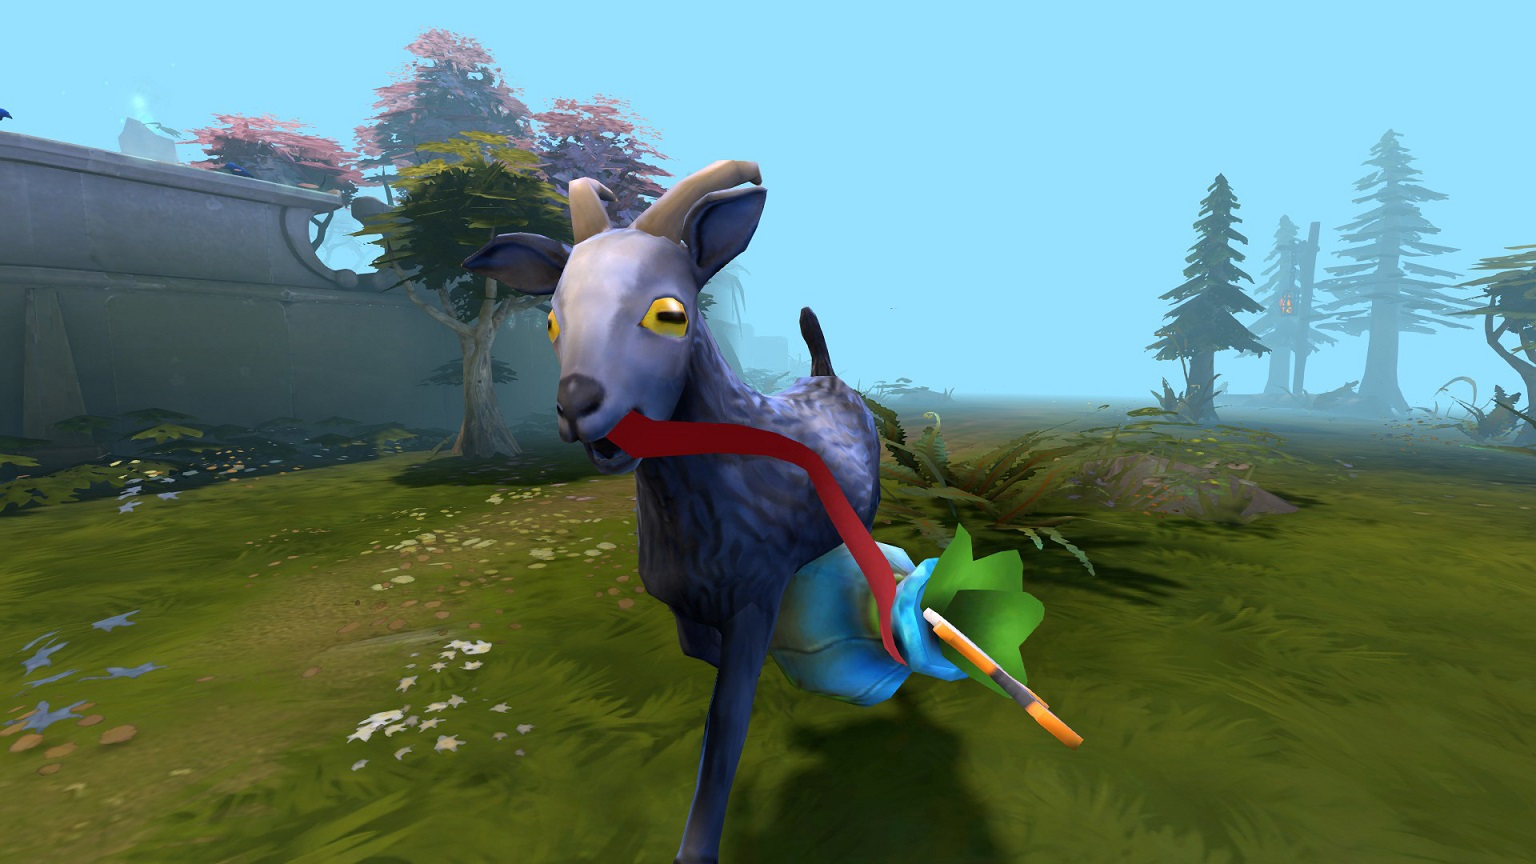 Help Bring The Goat From Goat Simulator To Dota 2 Gt GamersBook